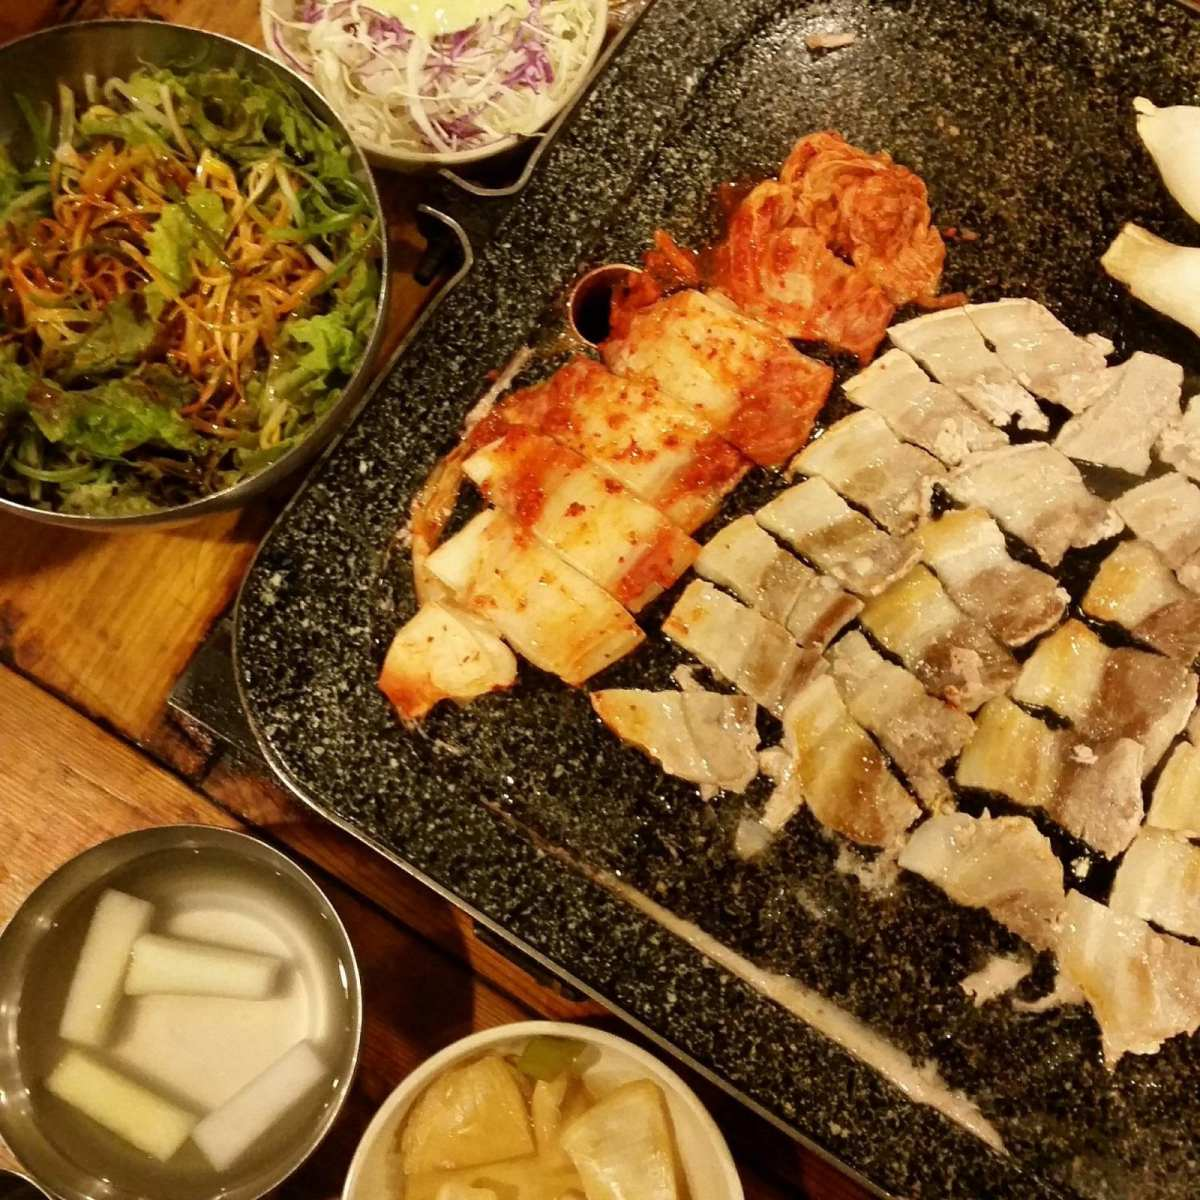 Nightlife in Seoul samgyupsal restaurant eujilro